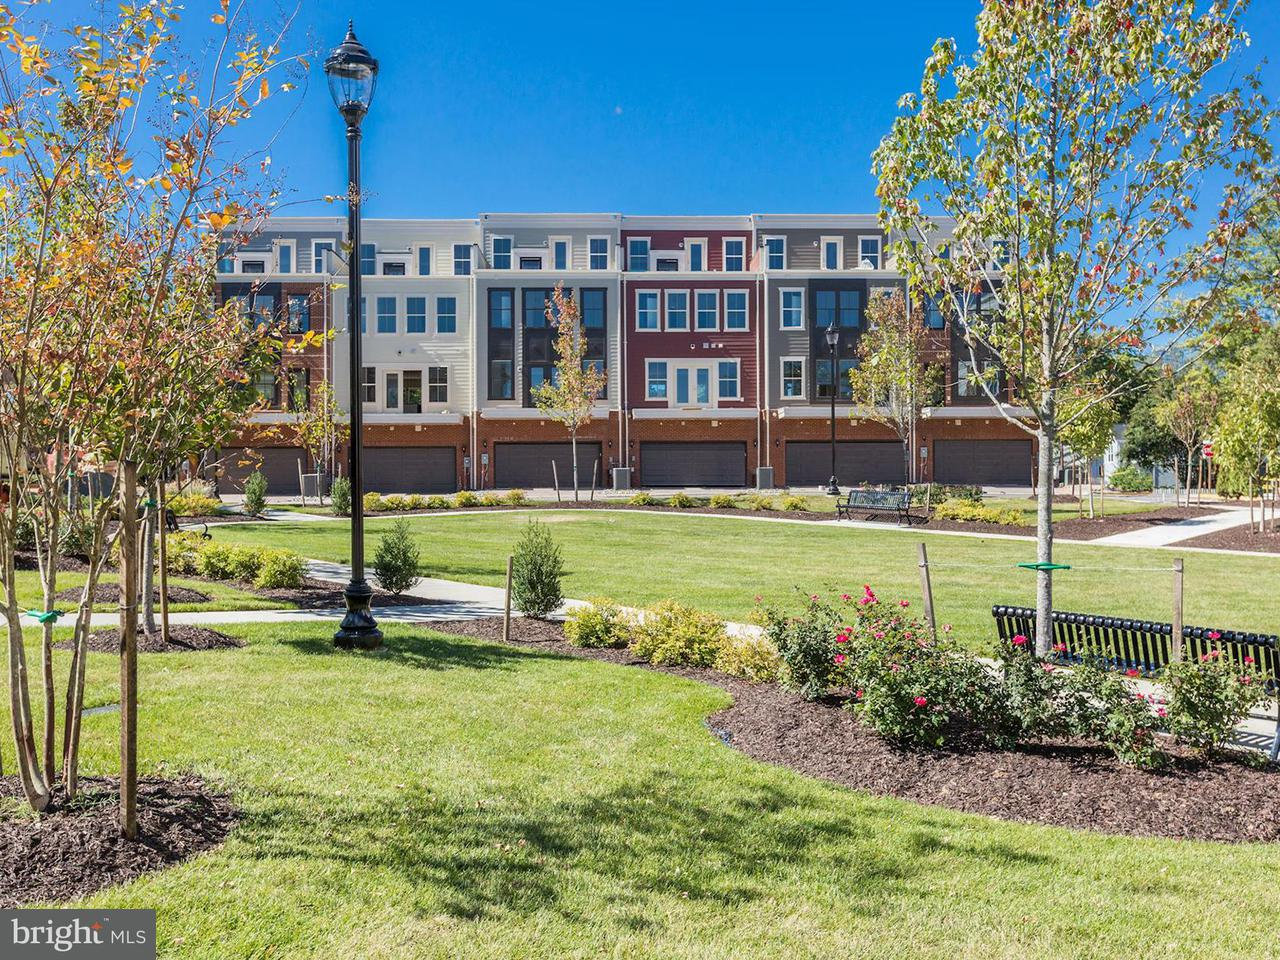 Additional photo for property listing at 3989 Norton Pl #102 3989 Norton Pl #102 Fairfax, Virginia 22030 Verenigde Staten